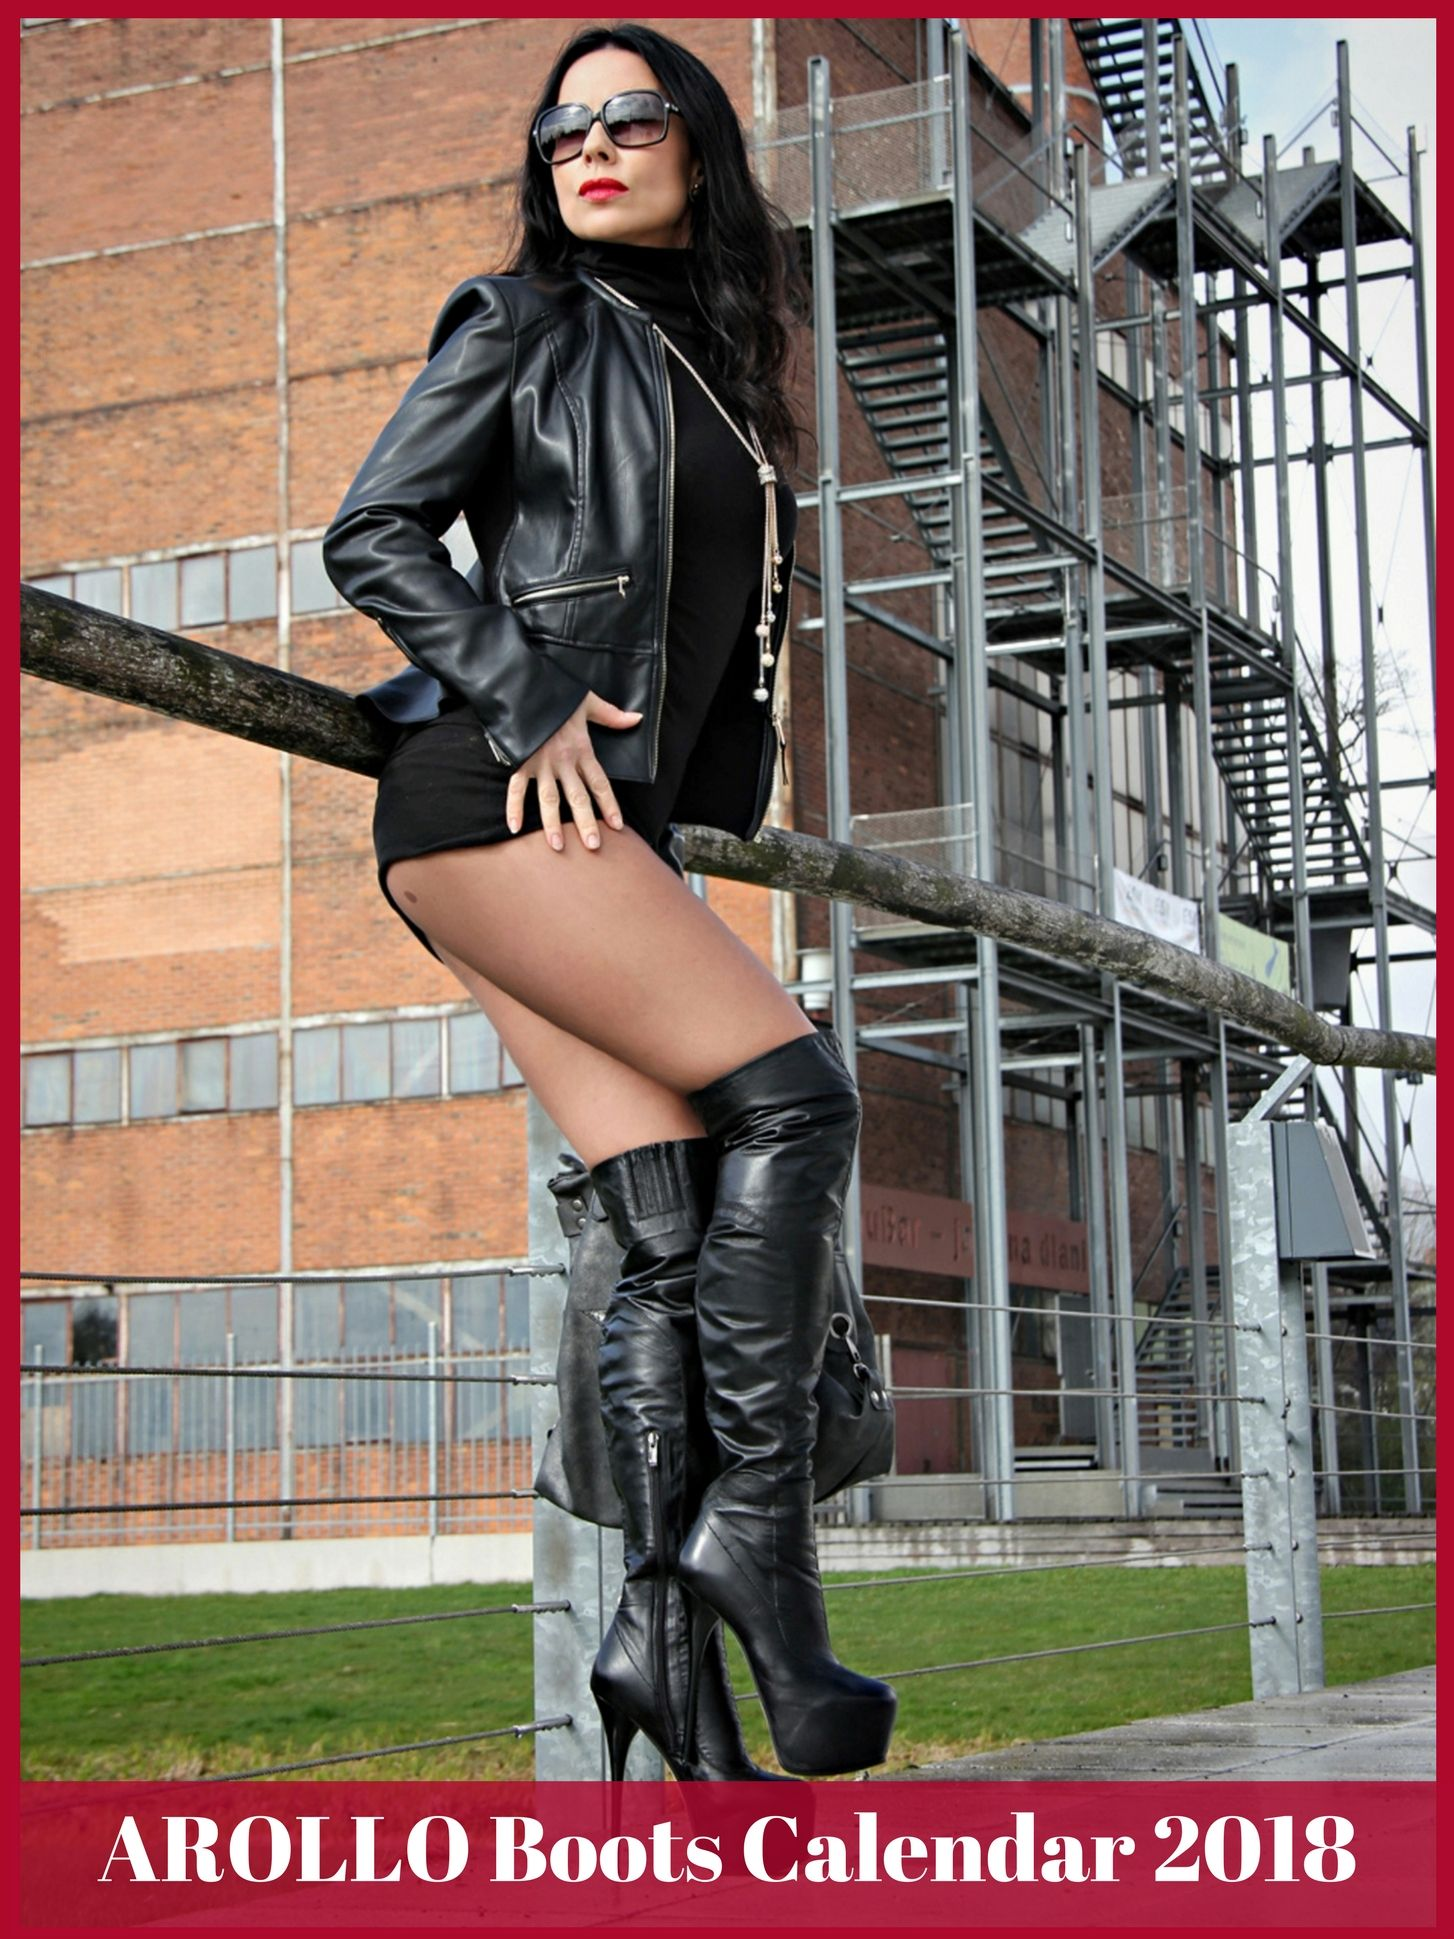 d2a4448c063a Arollo Thigh High Boots online store » Blog Archiv AROLLO Overknee Boots  Calendar 2018 available now